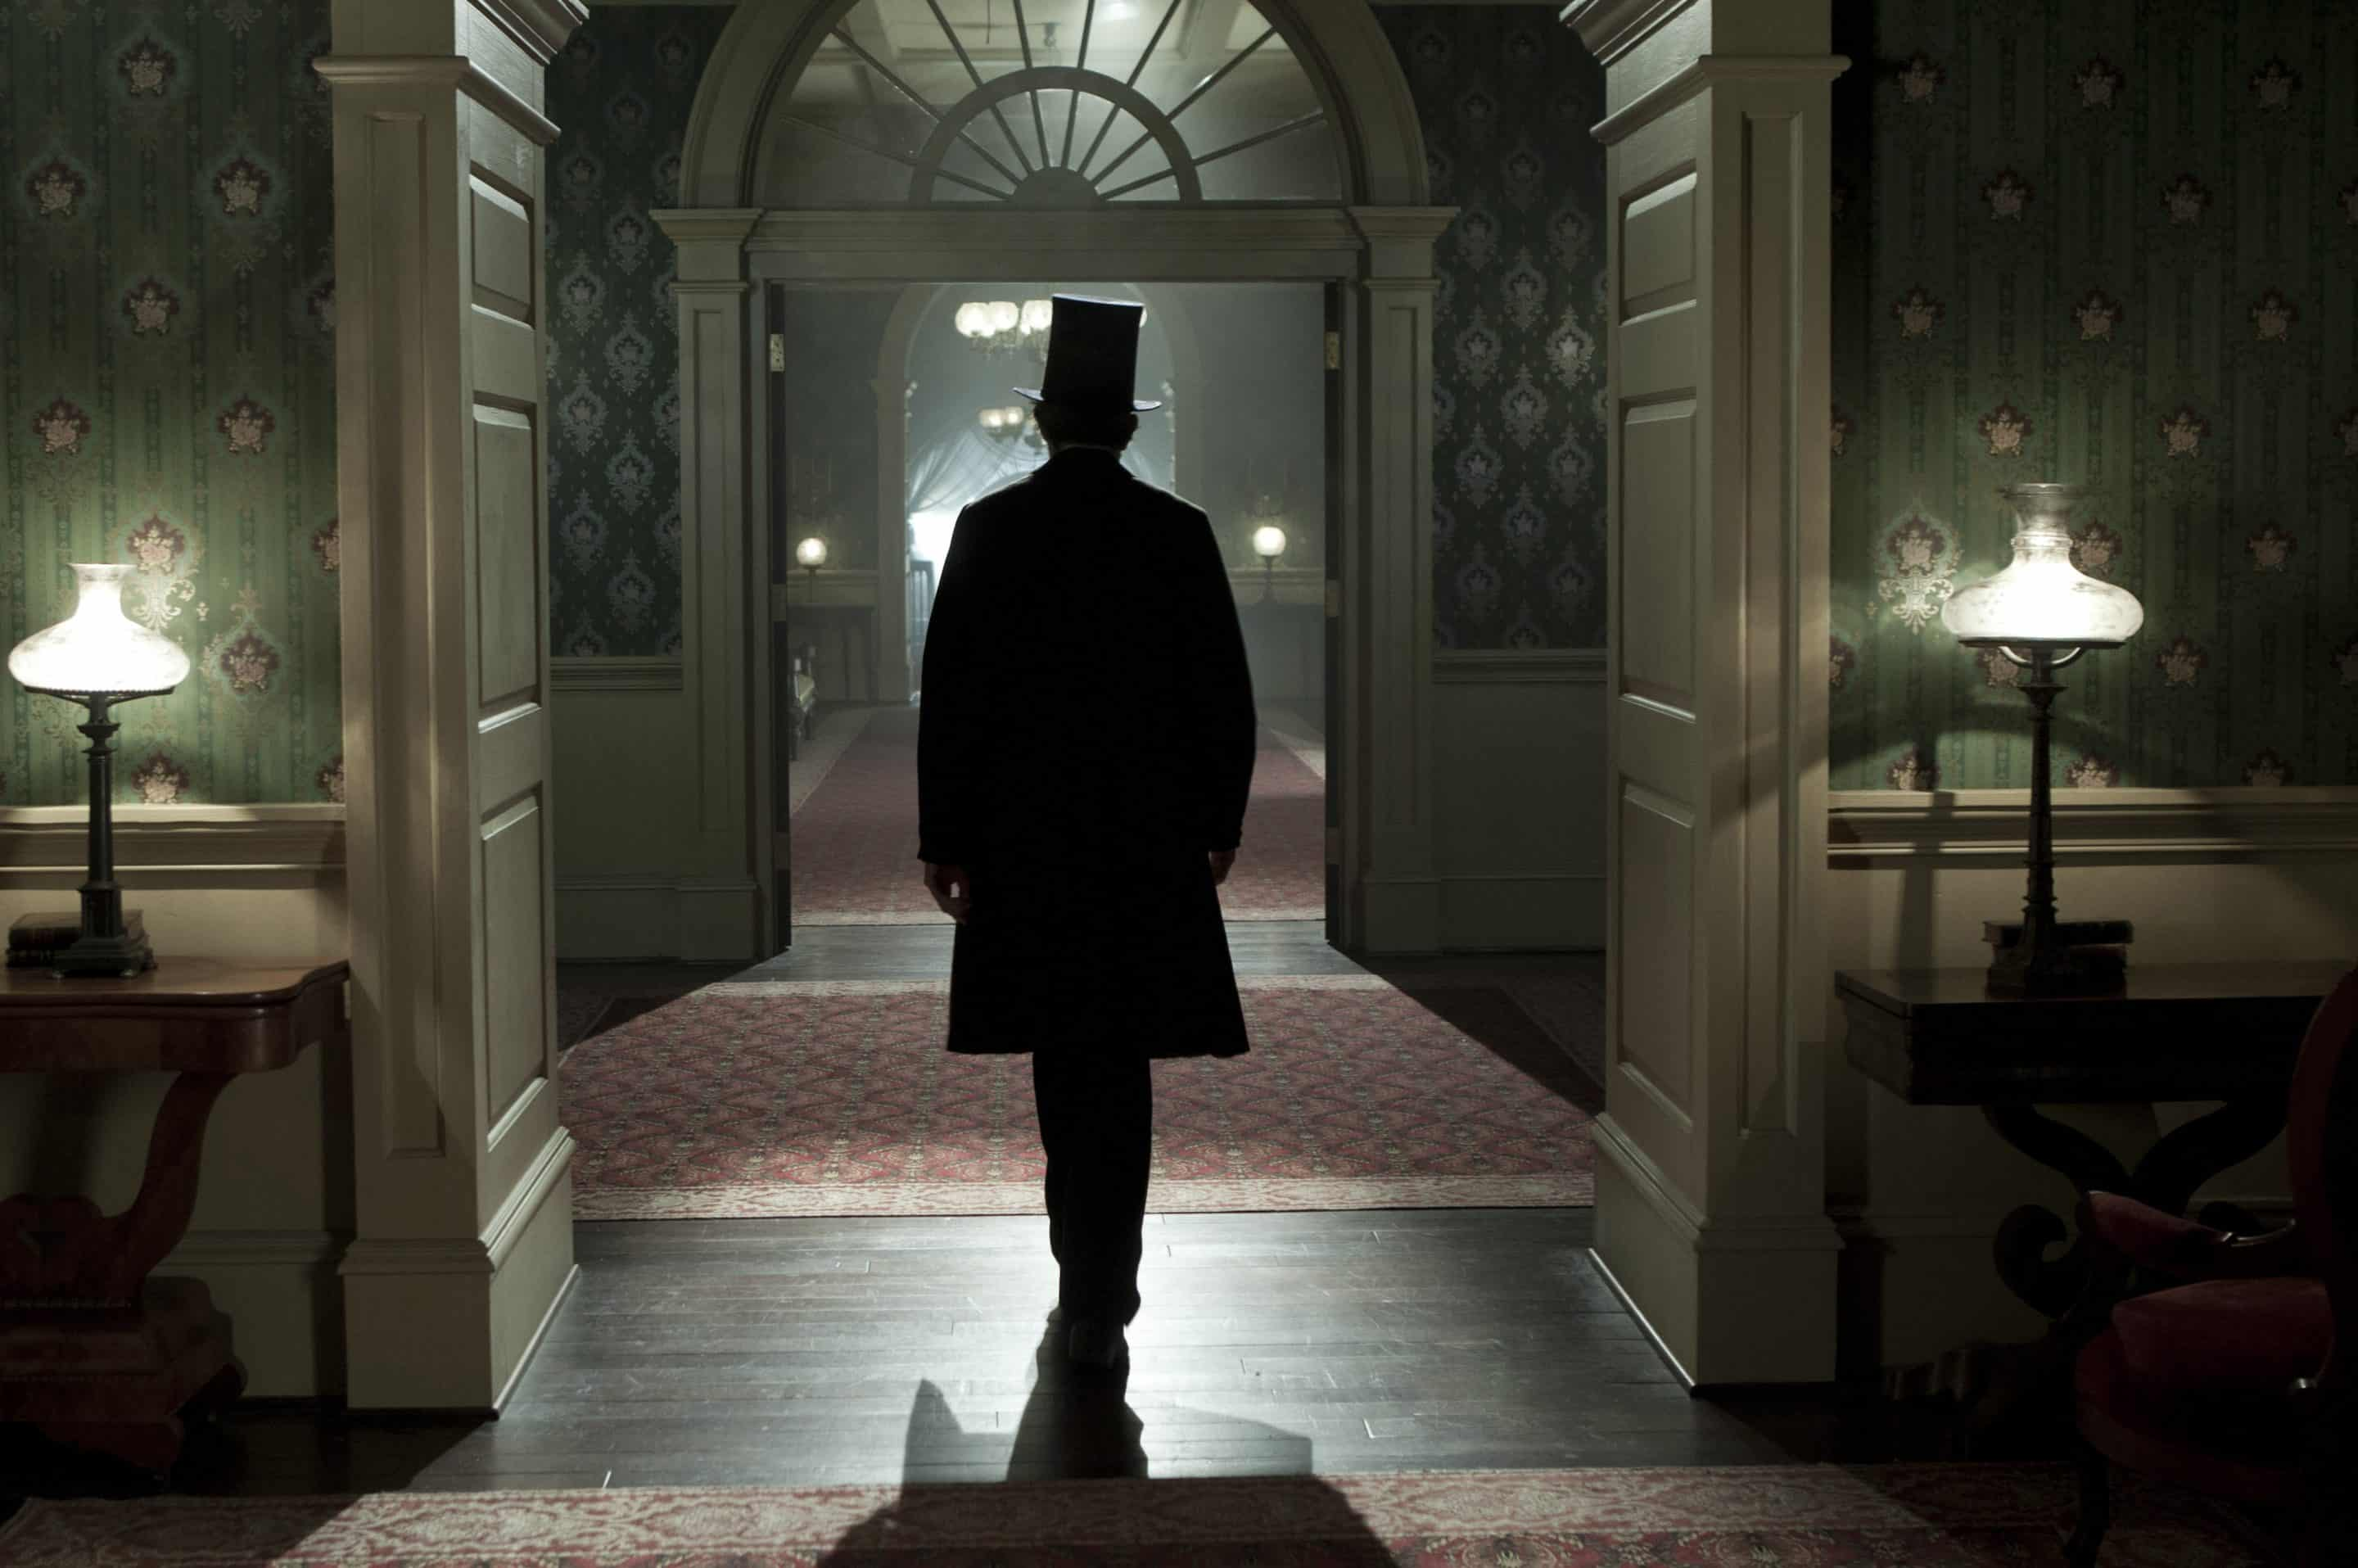 Steven Spielberg's Lincoln: A Powerful Look At Our Nation's History